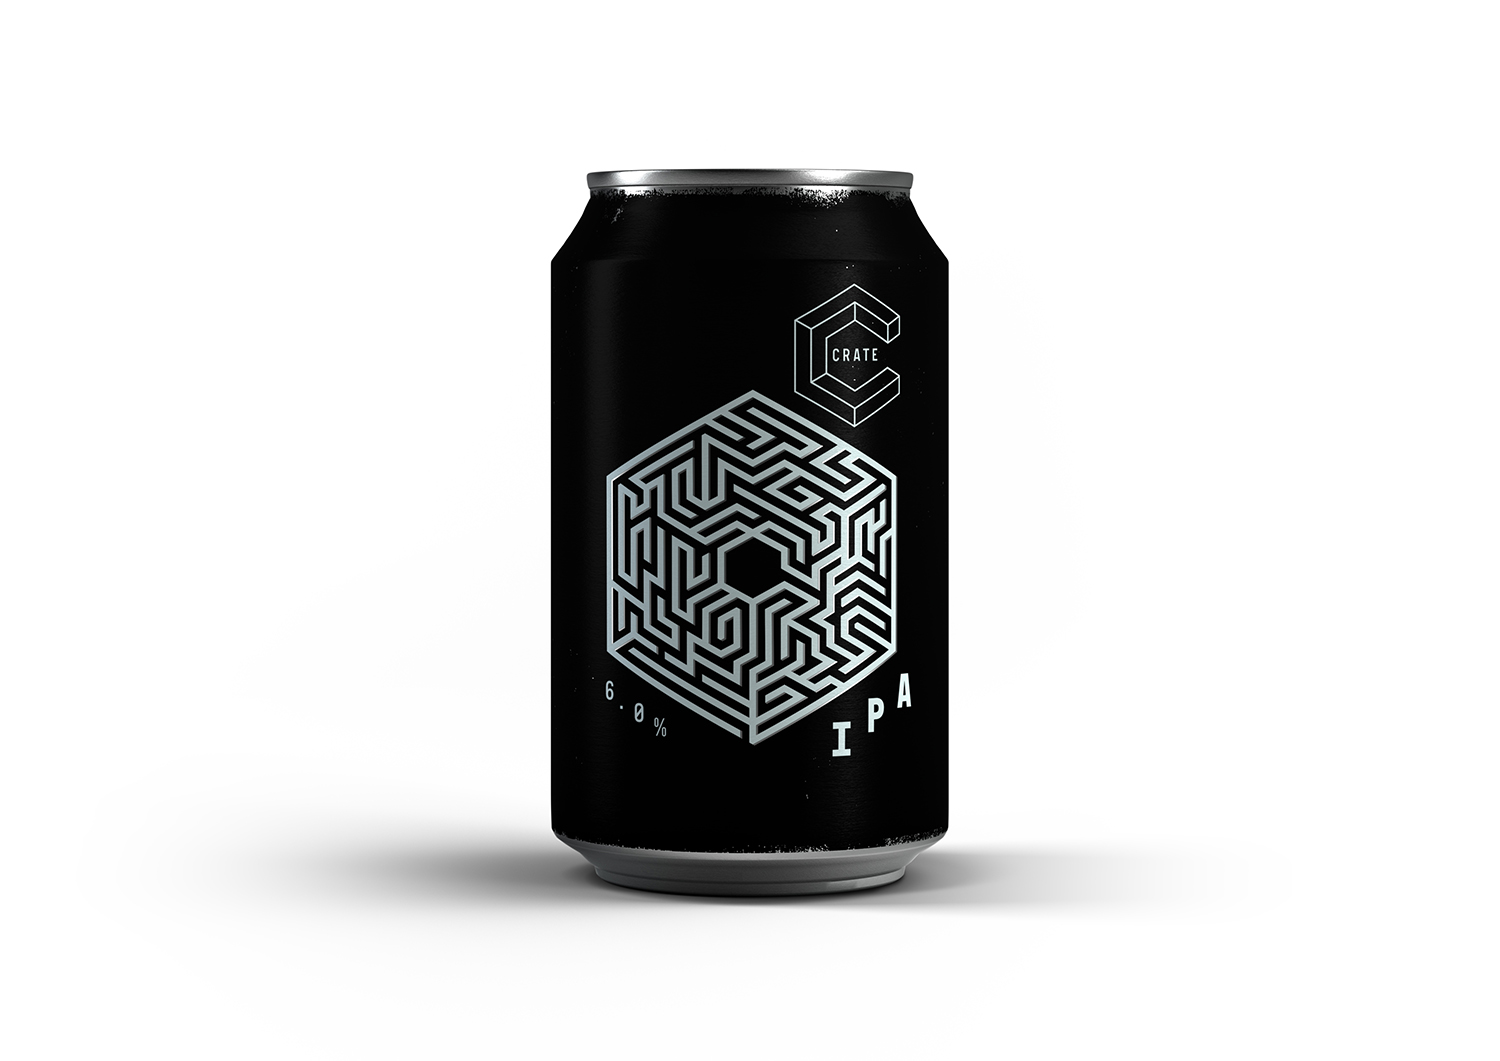 craft-beer-can-3d-packshot-02